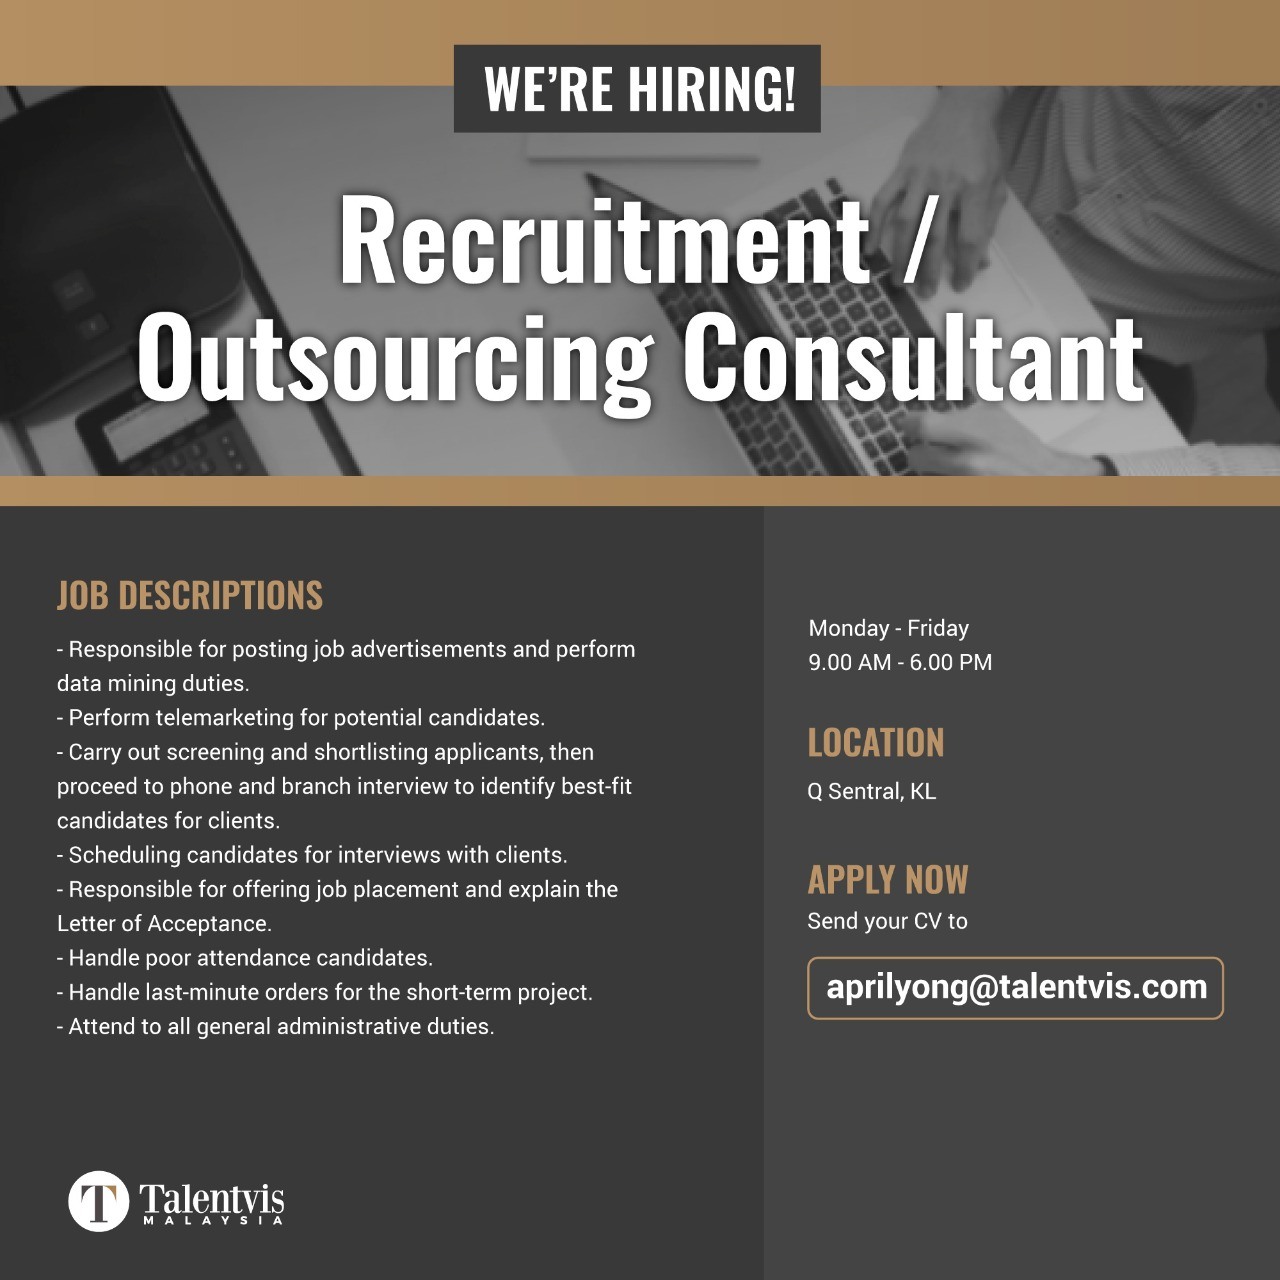 Job Opening-Talentvis Recruitment Malaysia (Outsourcing Consultant)